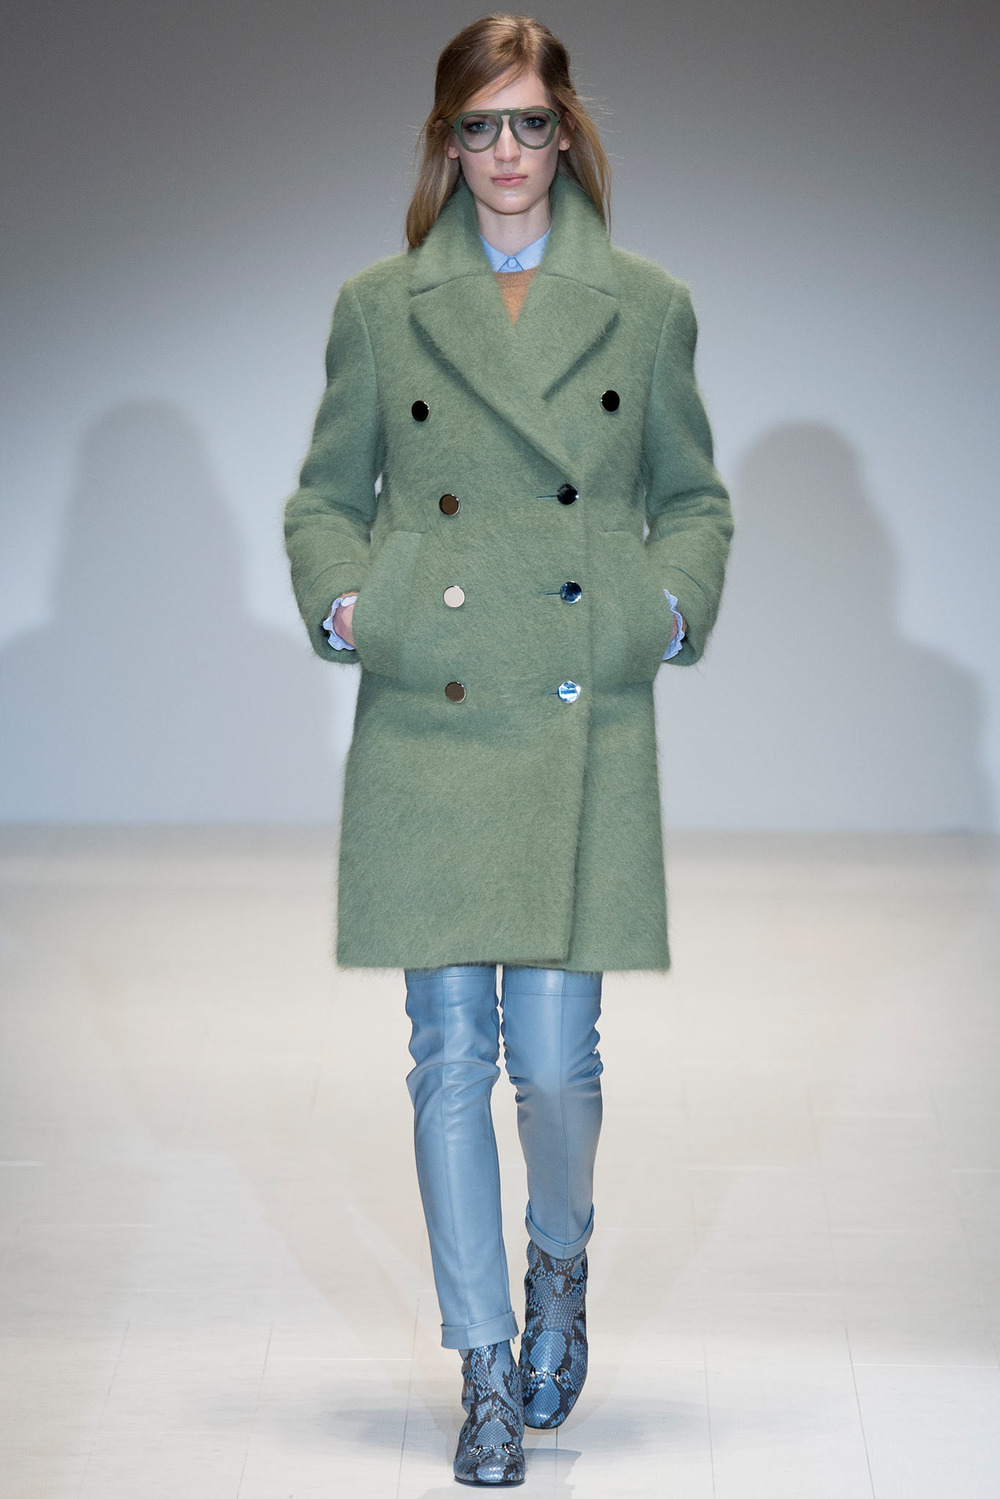 Gucci-Fall-2014-01.JPG